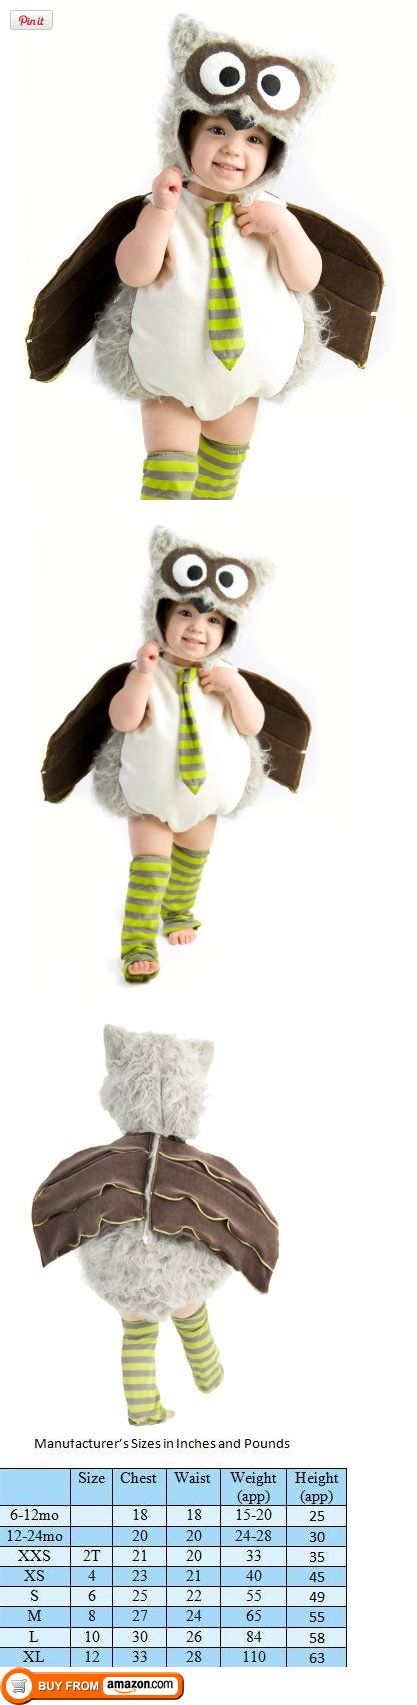 princess paradise baby boys owl outfit cute toddler halloween costume 18 months 2t edward - Where To Buy Infant Halloween Costumes